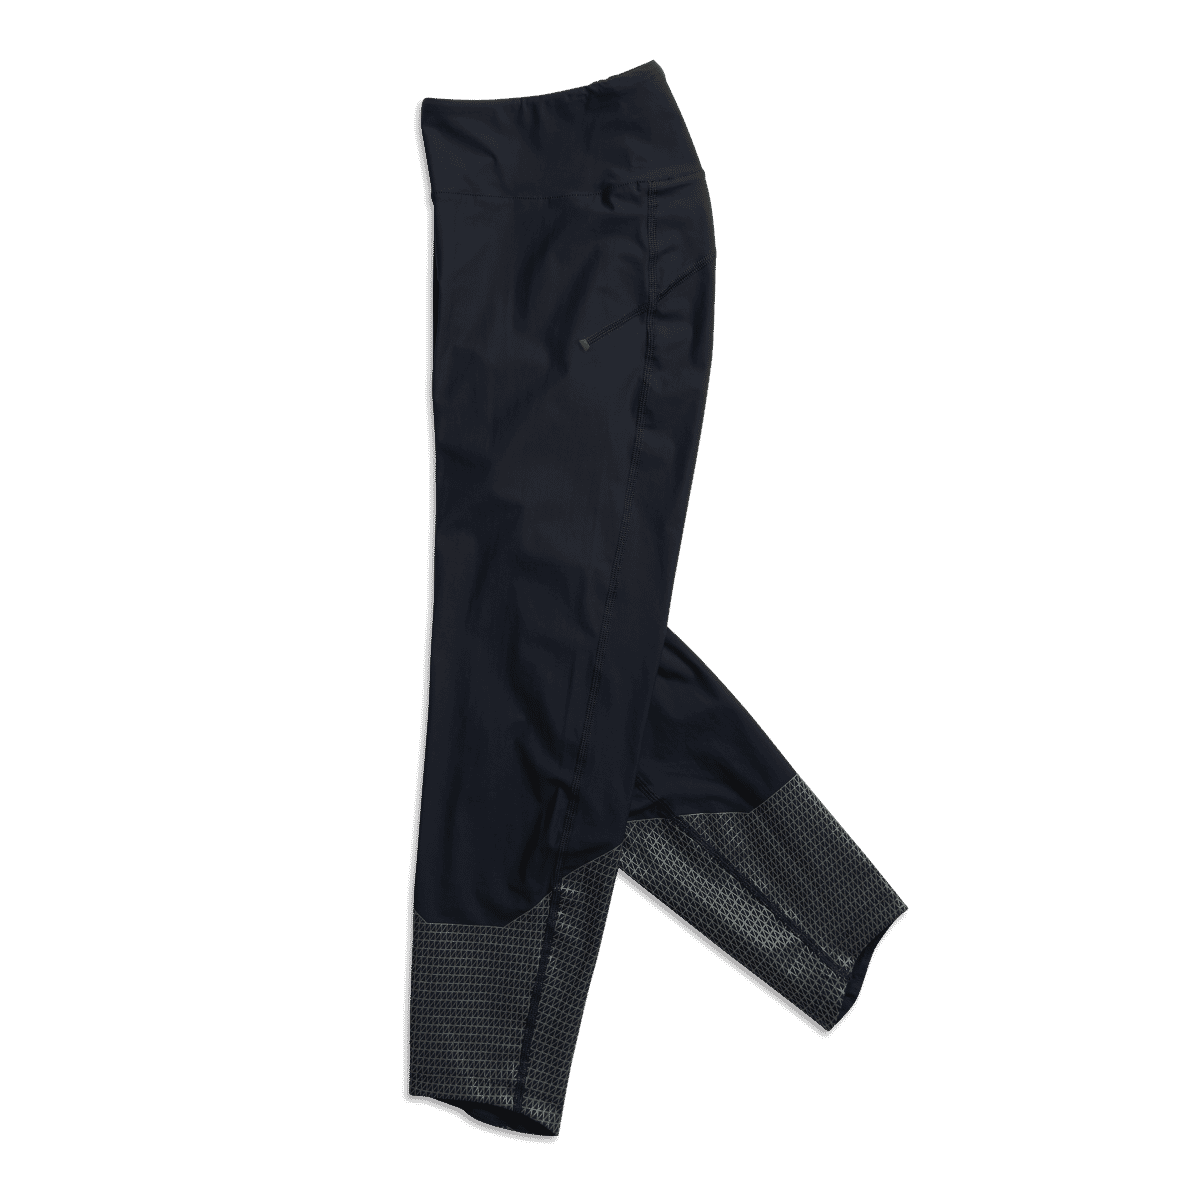 f6038f59380 Women s Running Tights - Stretchable   Reflective